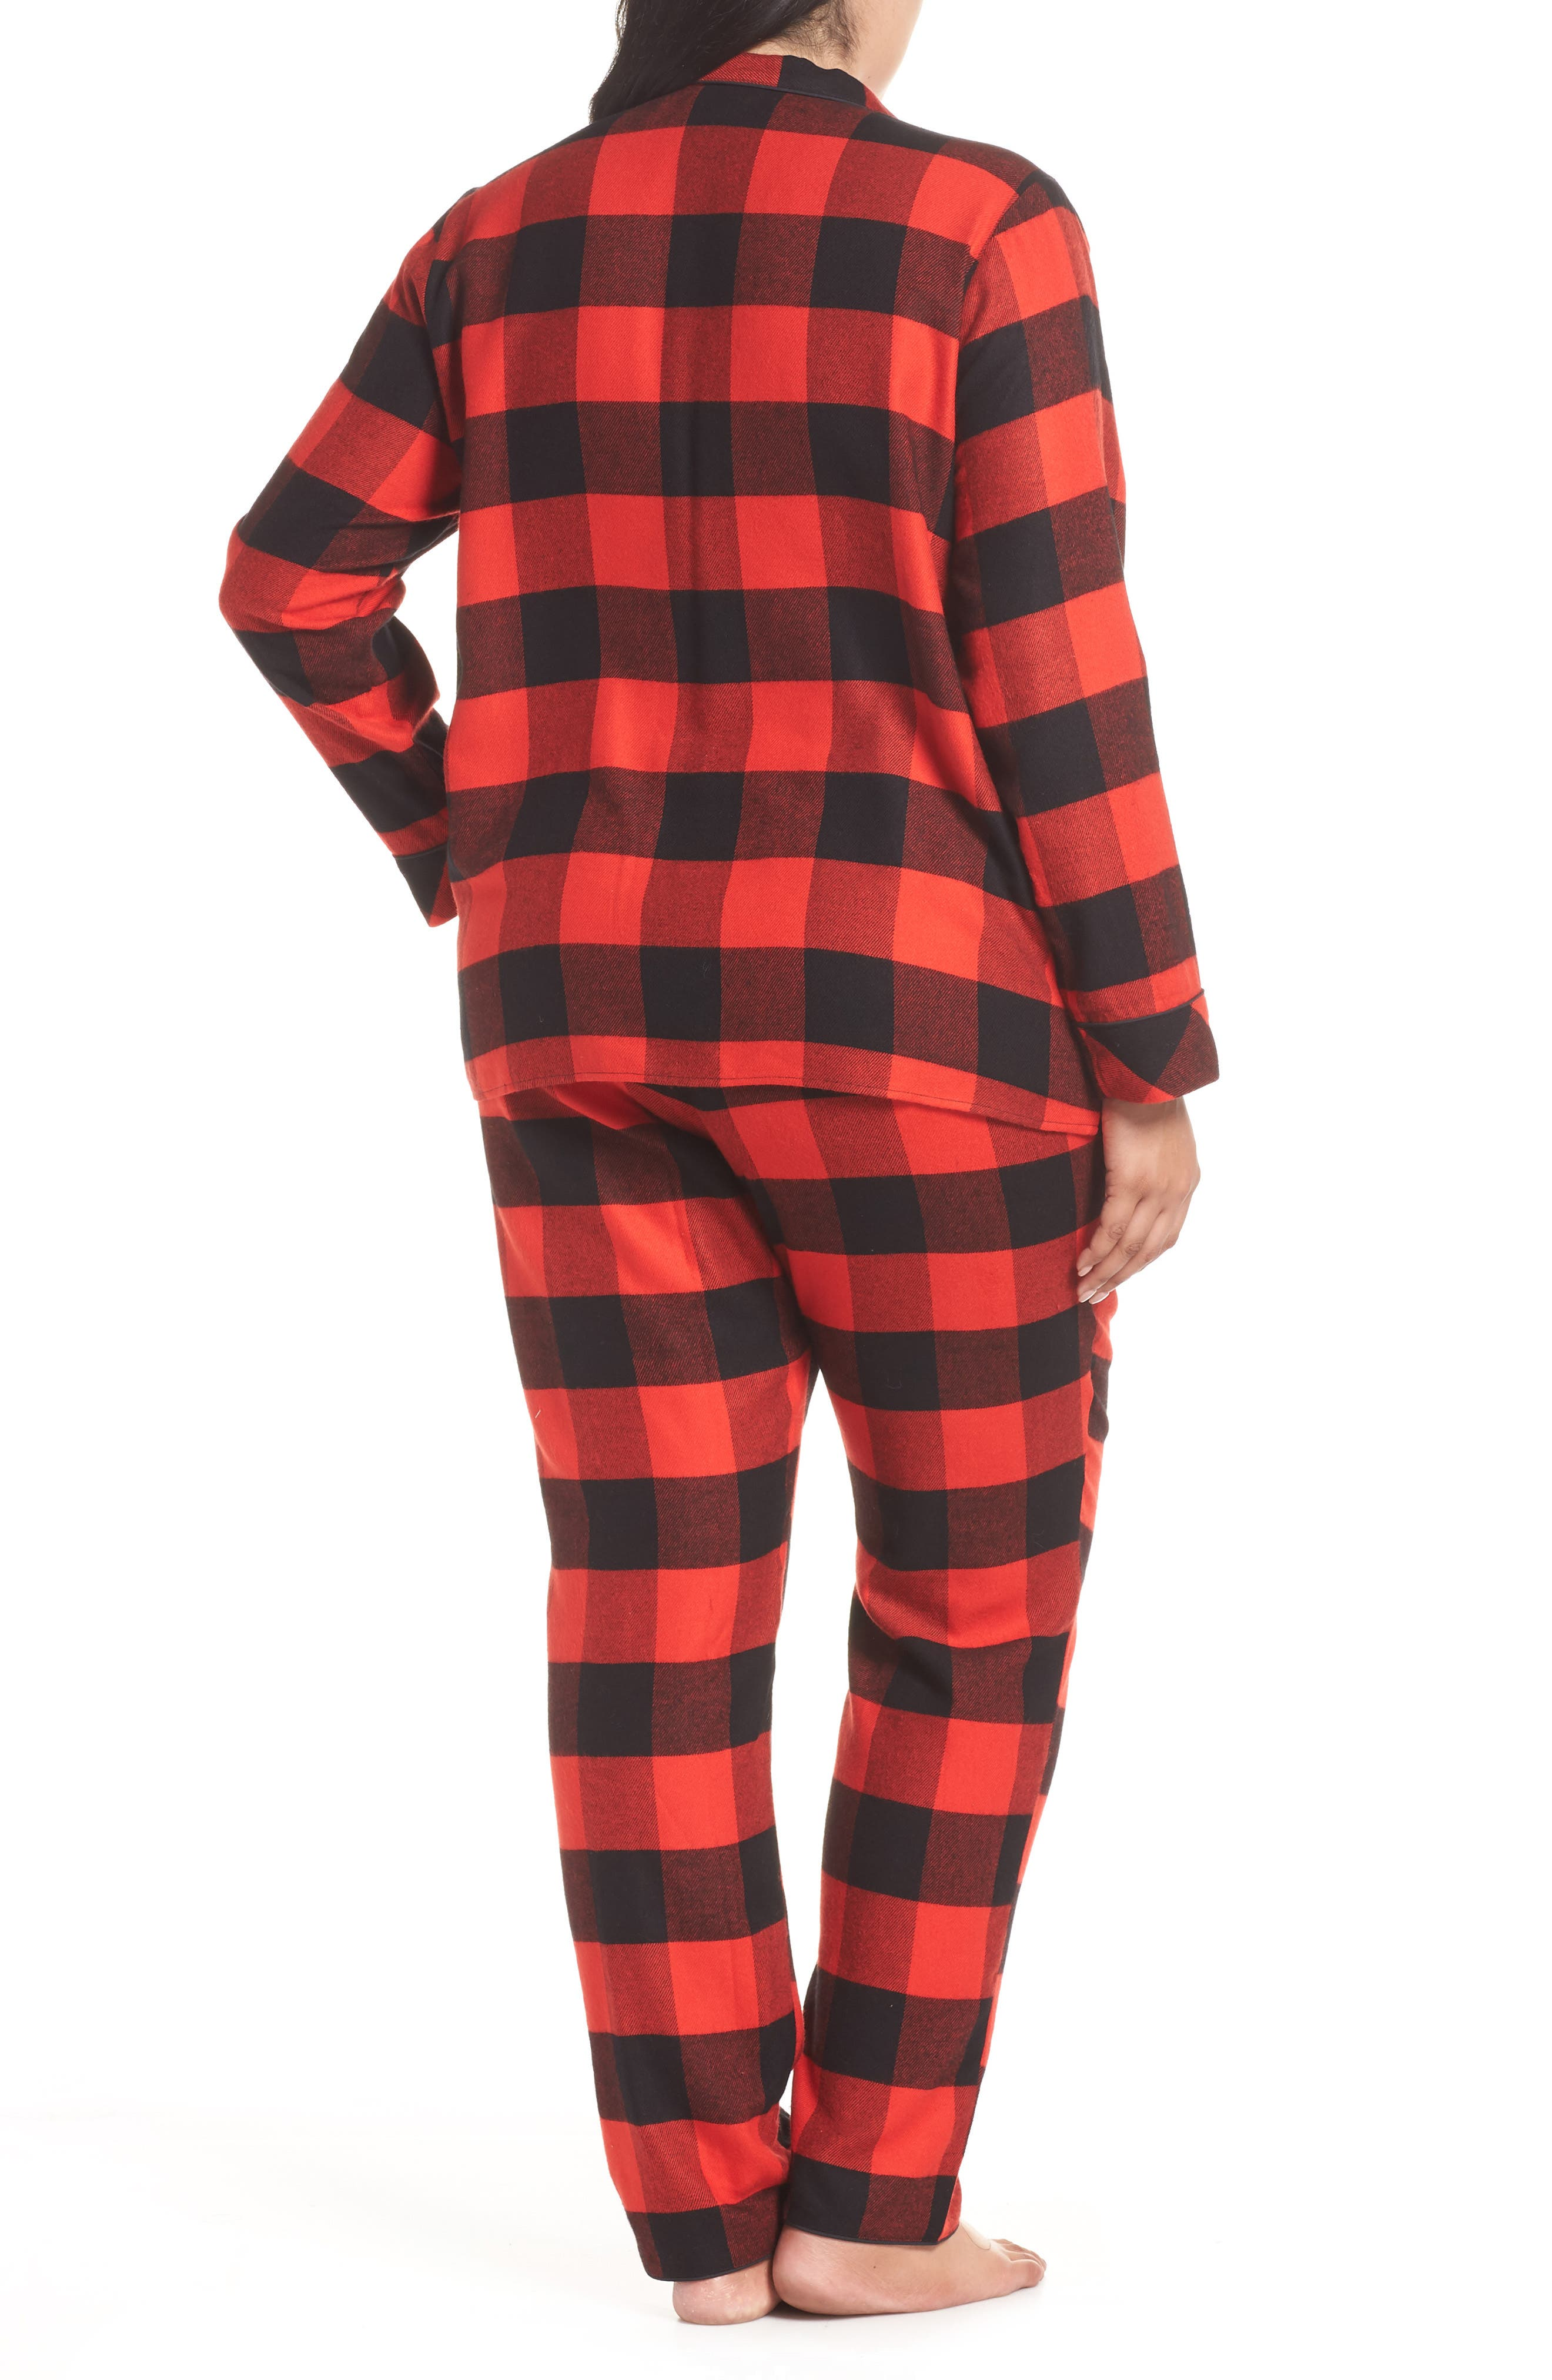 Starlight Plaid Flannel Pajamas,                             Alternate thumbnail 2, color,                             RED BLOOM LARGE BUFFALO CHECK